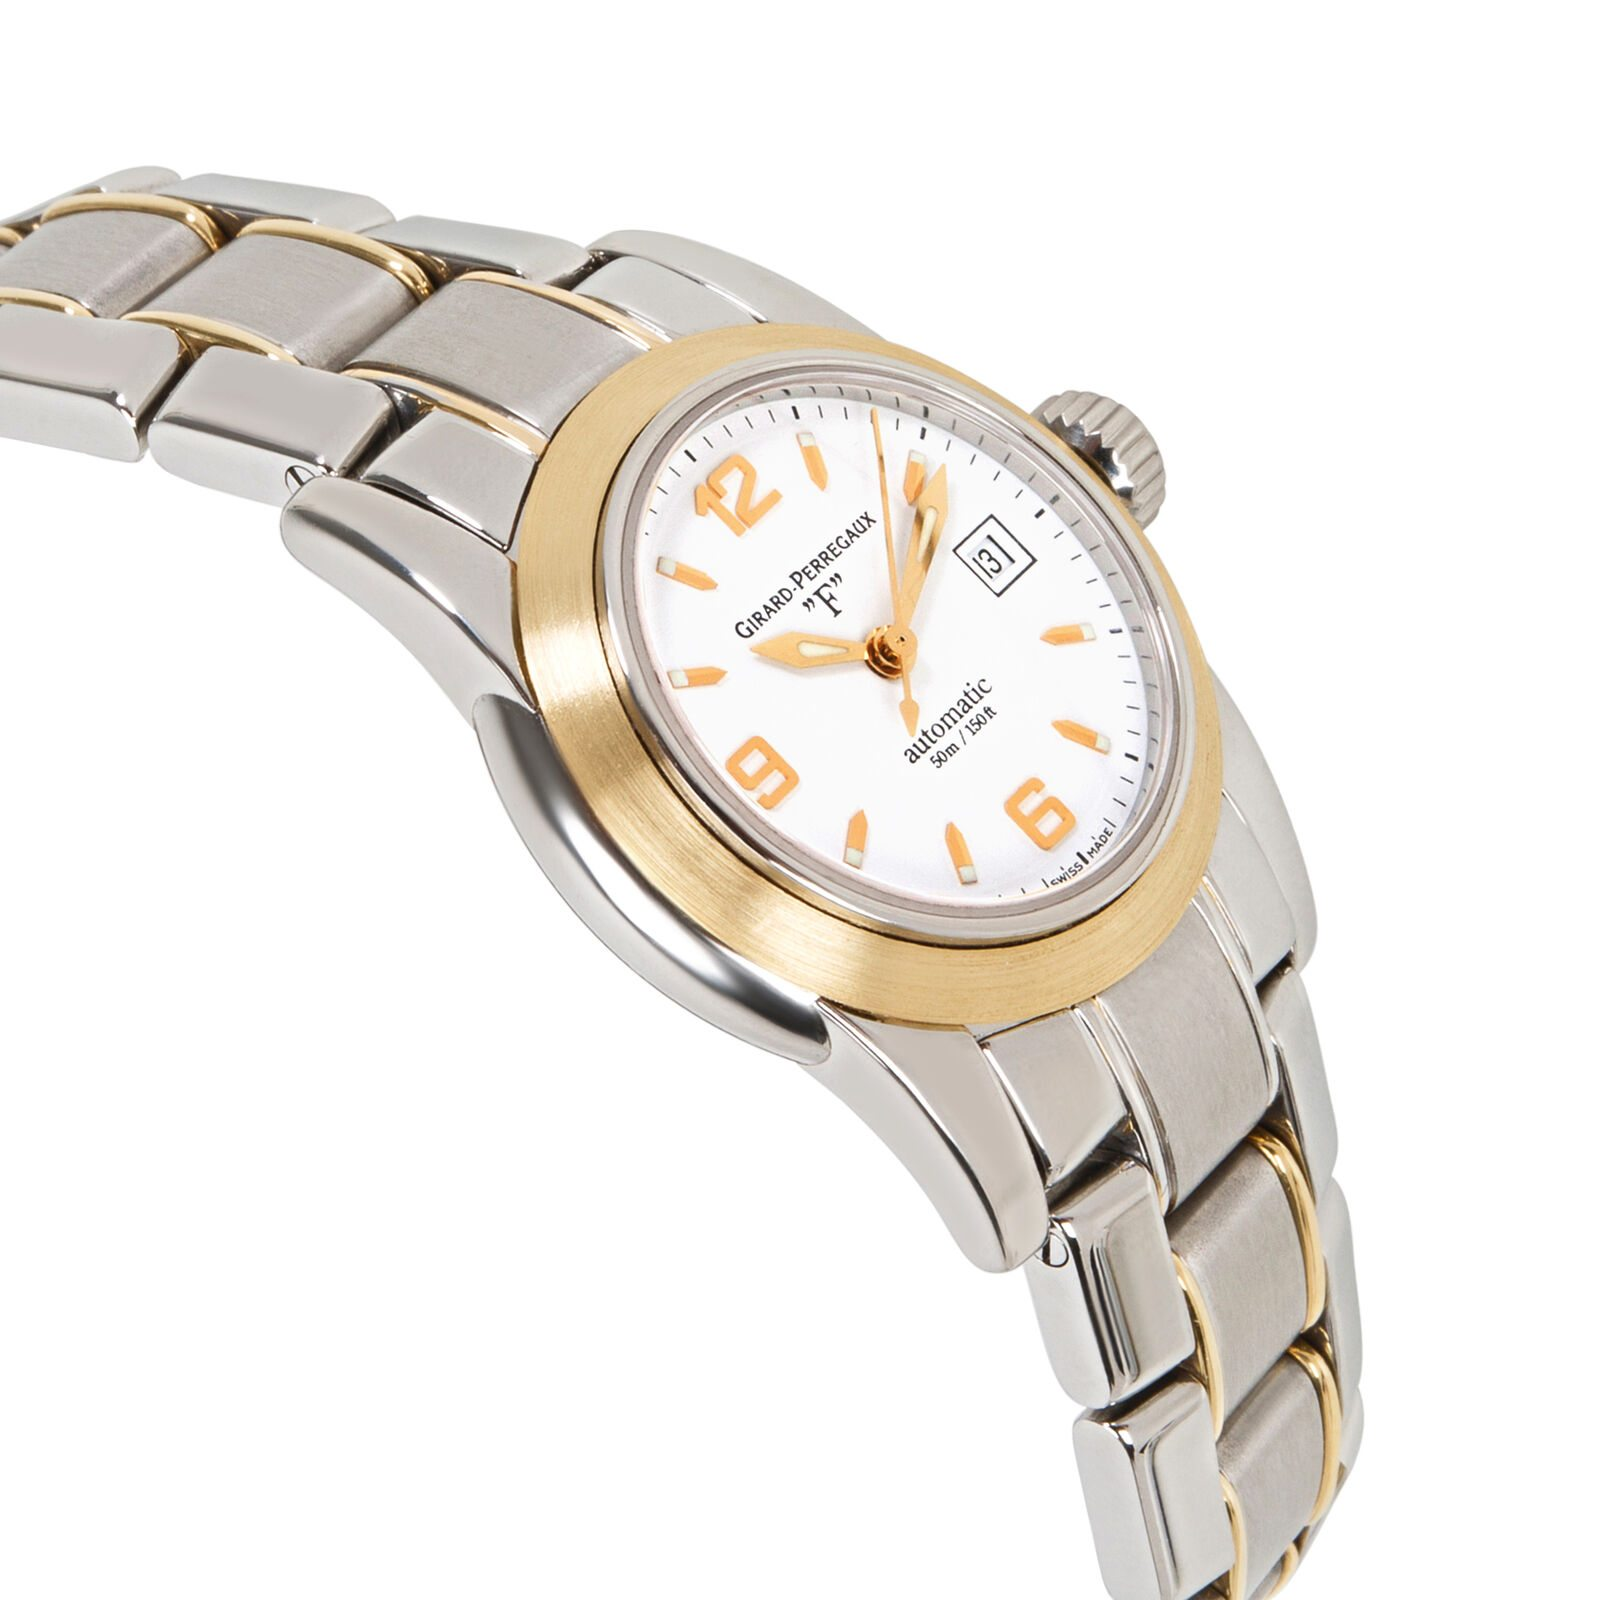 Image of Girard Perregaux Lady F 80390 Watch in SS & 18K Yellow Gold